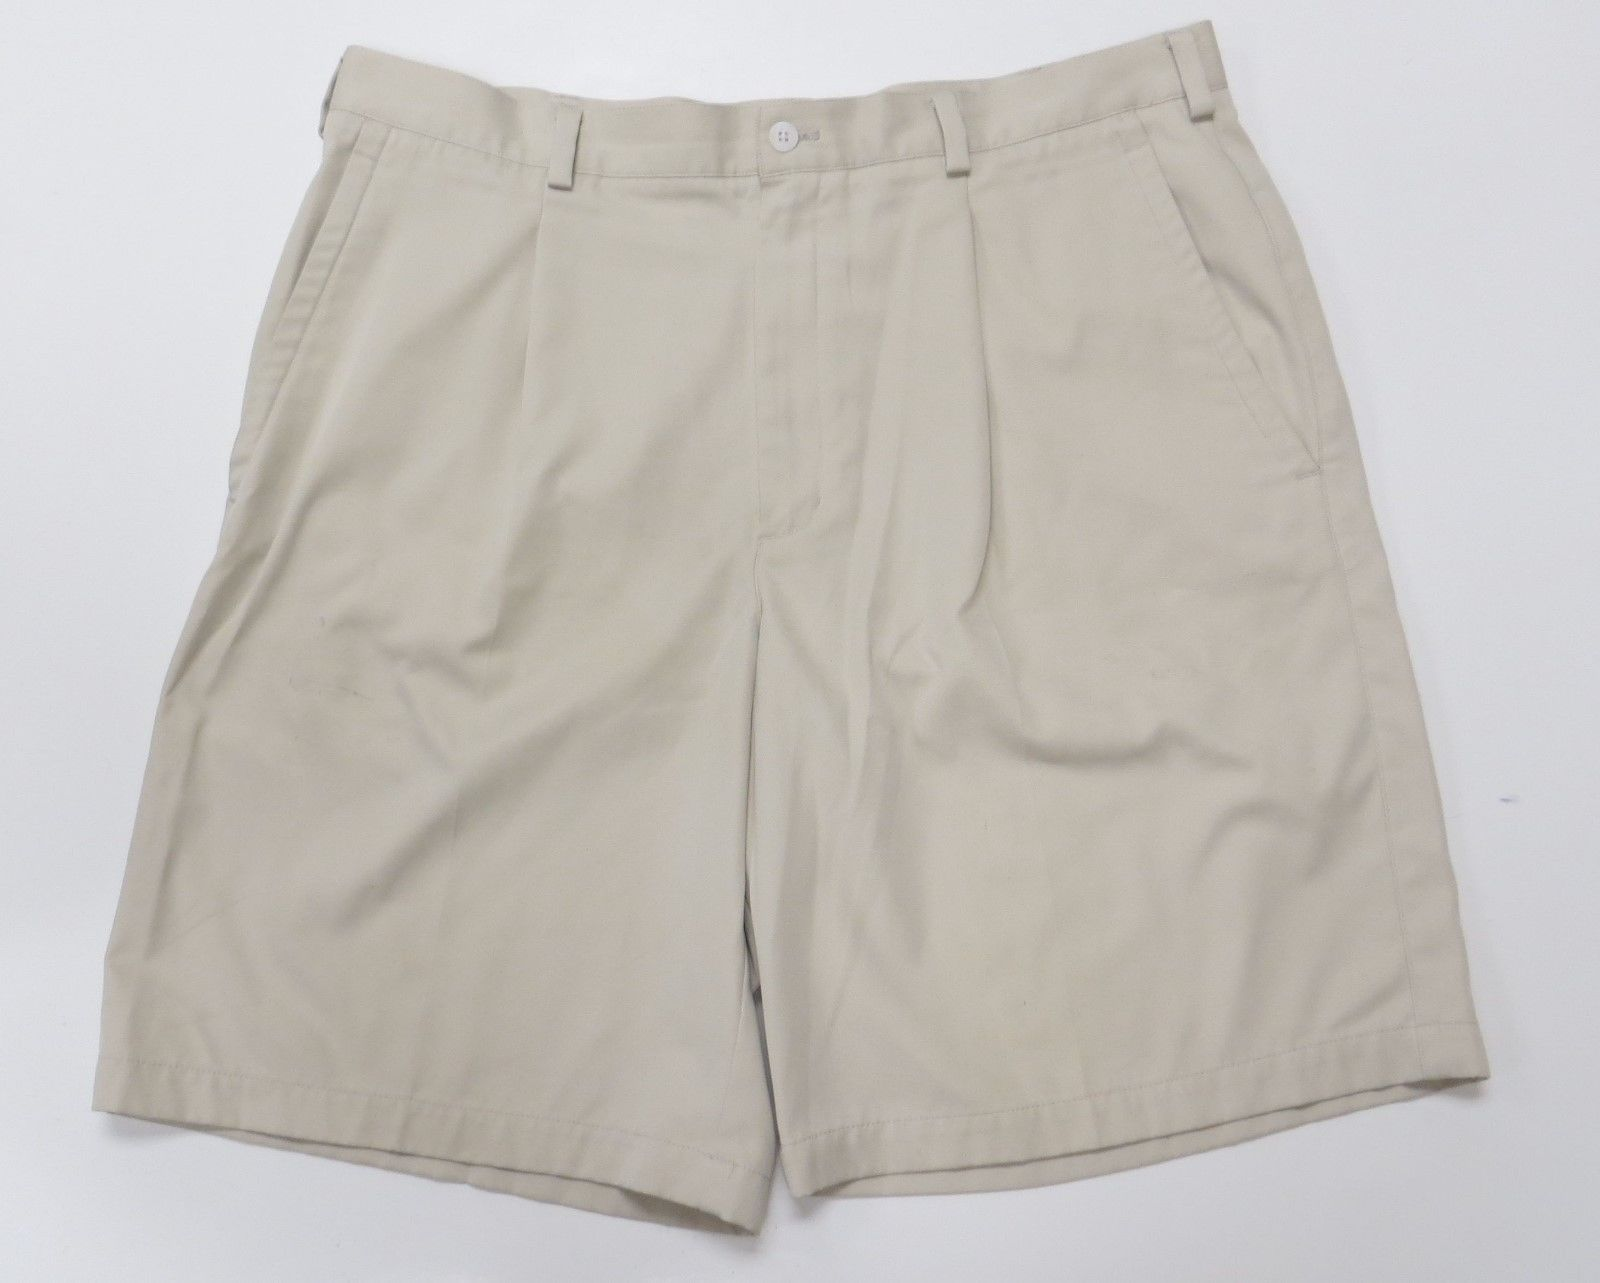 084b4f4d008b1 Nike Golf Tour Tech Short 198589 Mens 38 and 50 similar items